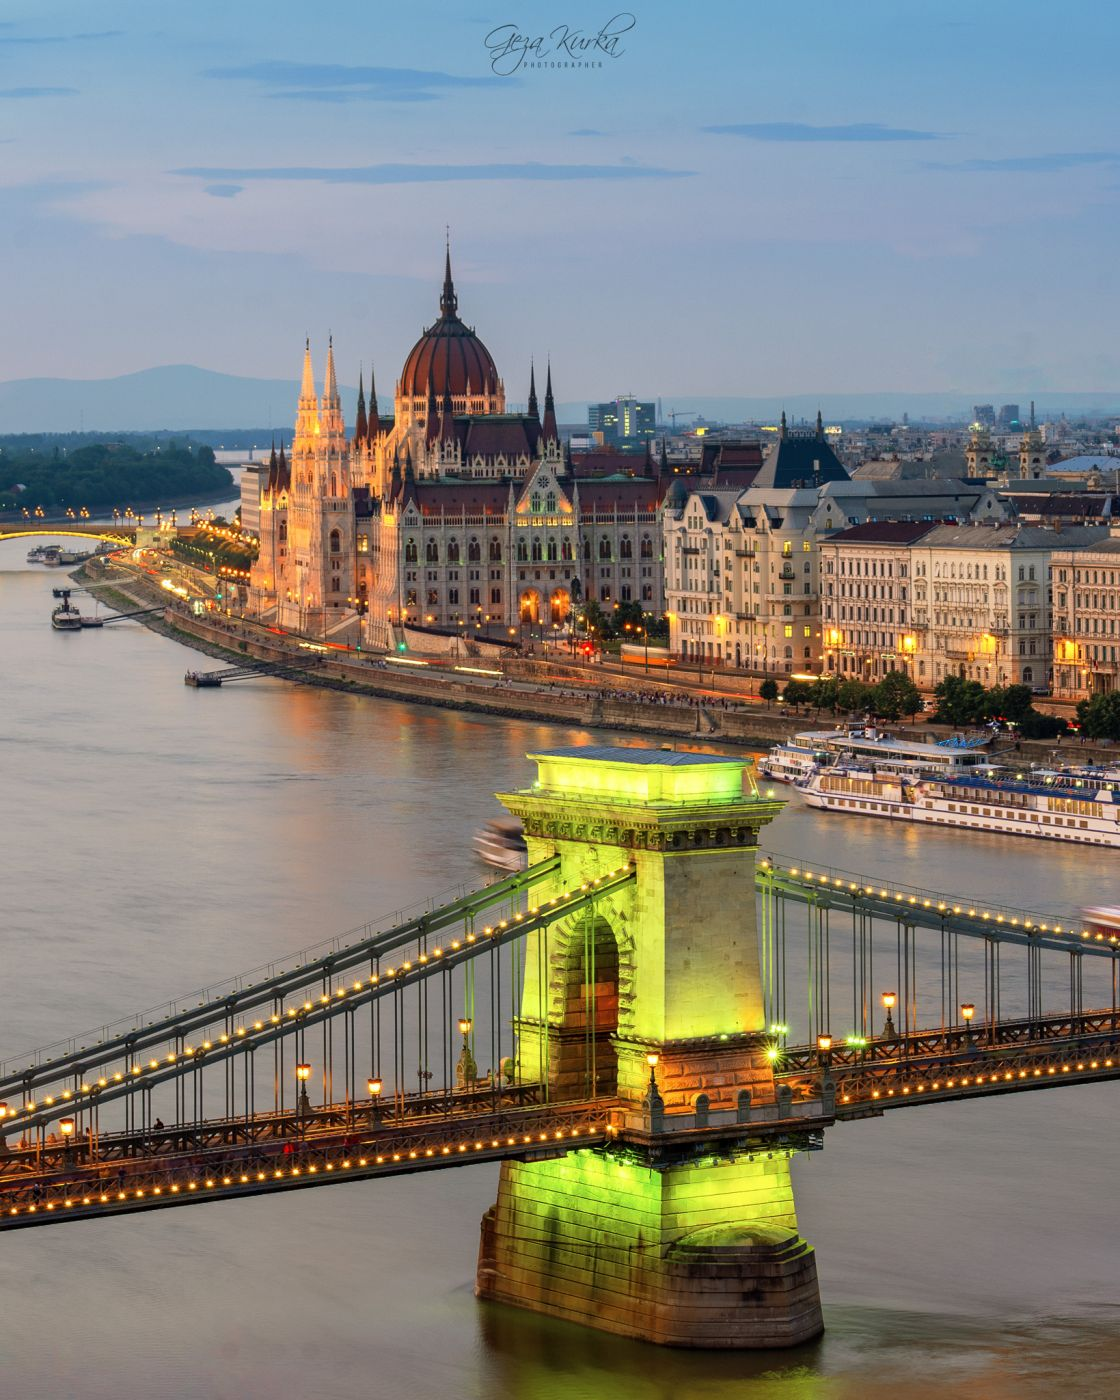 Hungarian parliament & chain bridge, Hungary